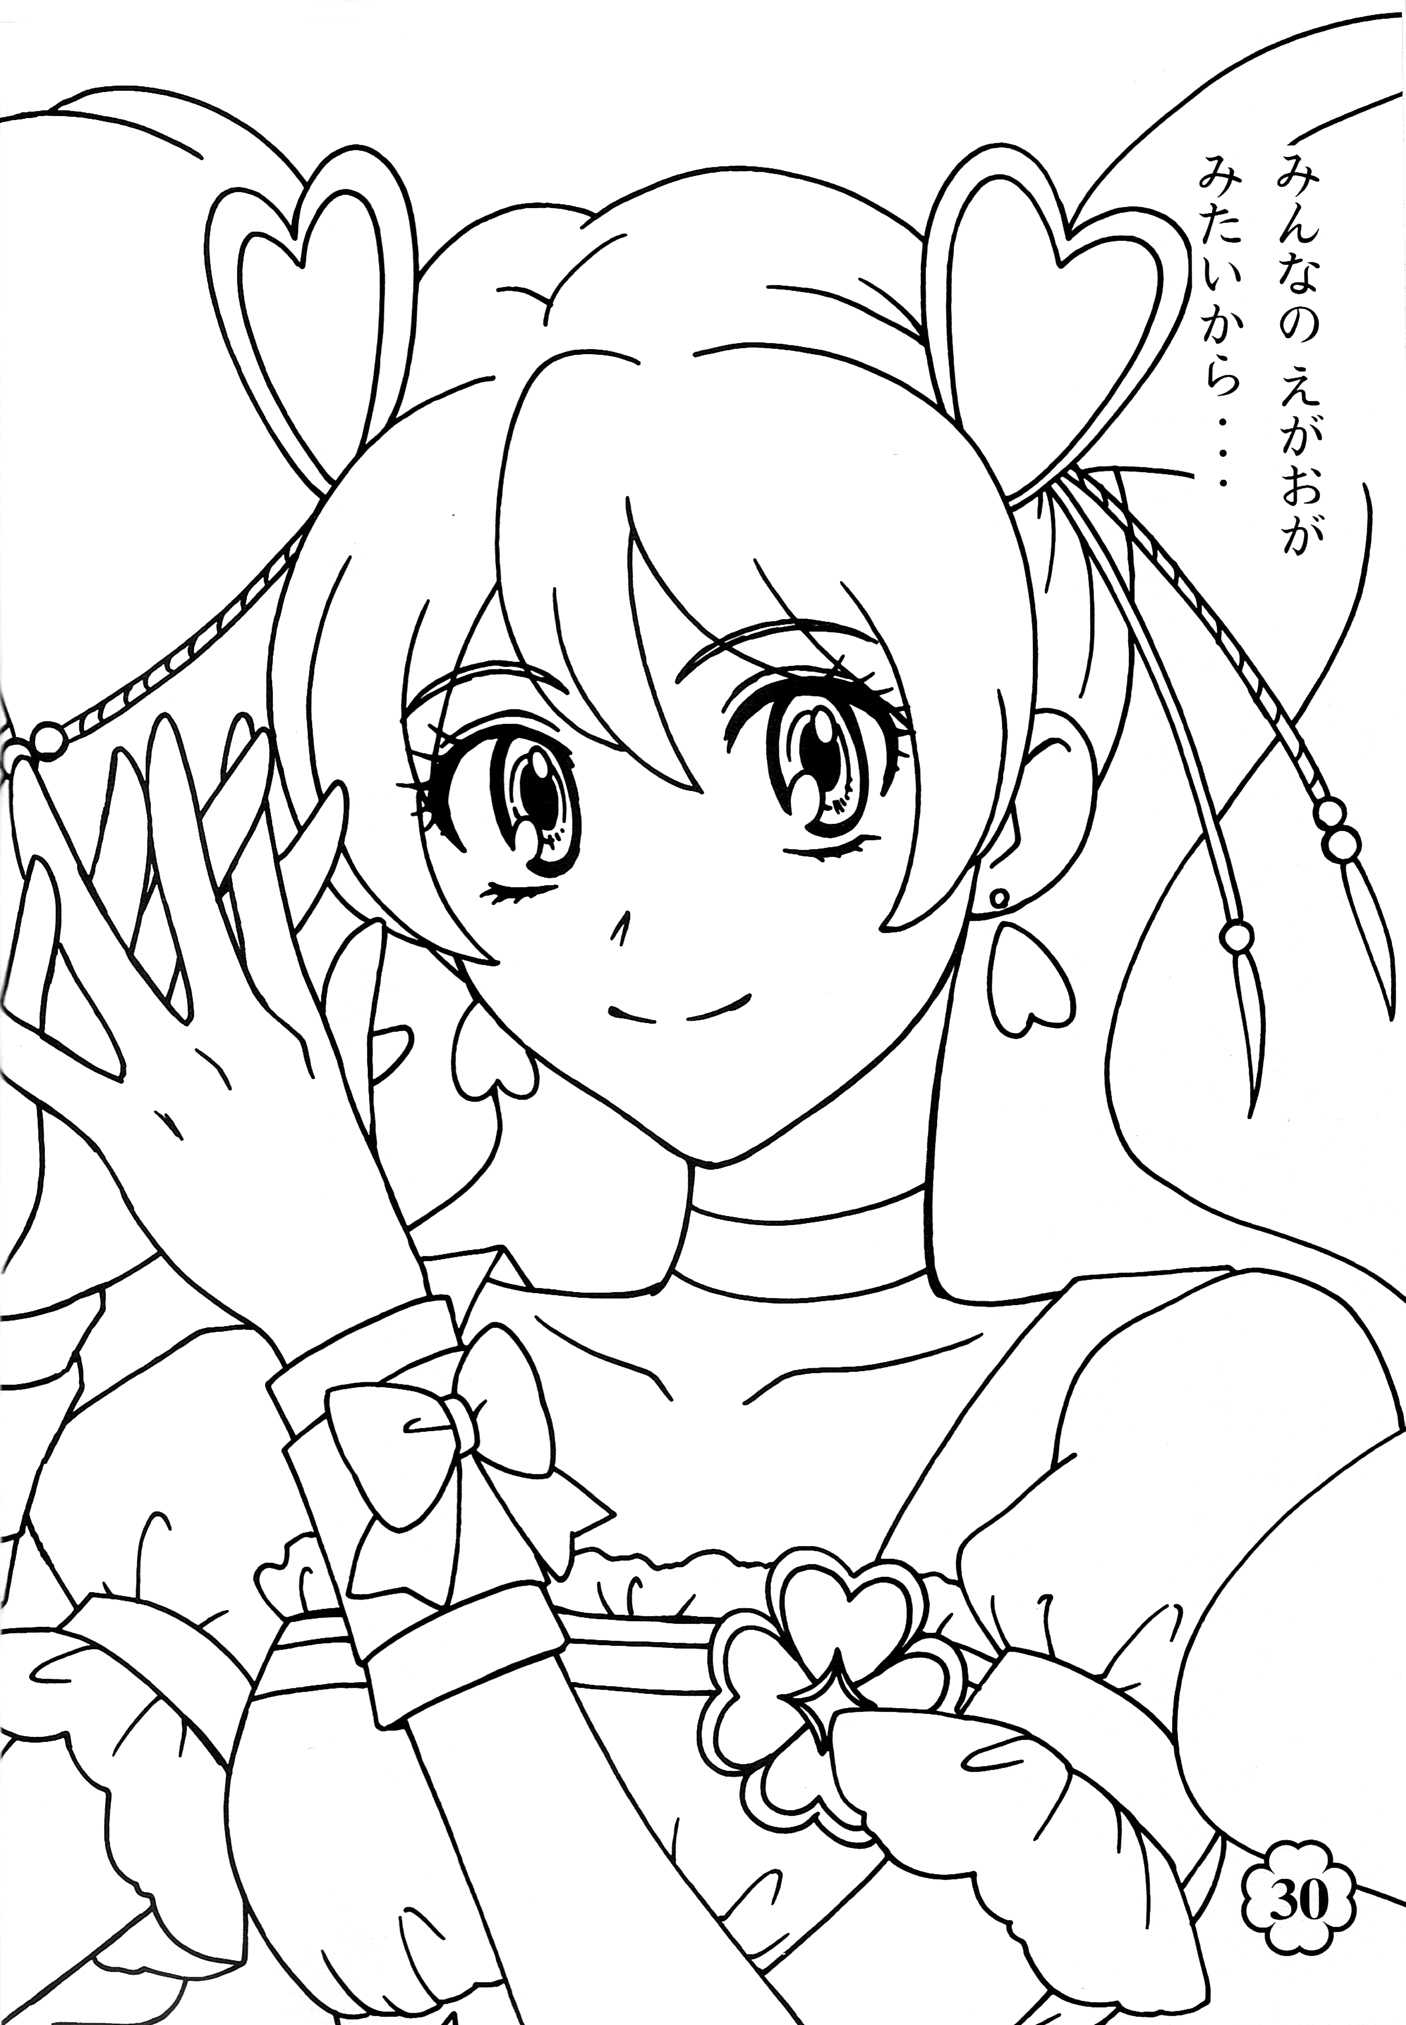 smile precure coloring pages - pin smile precure colouring pages on pinterest